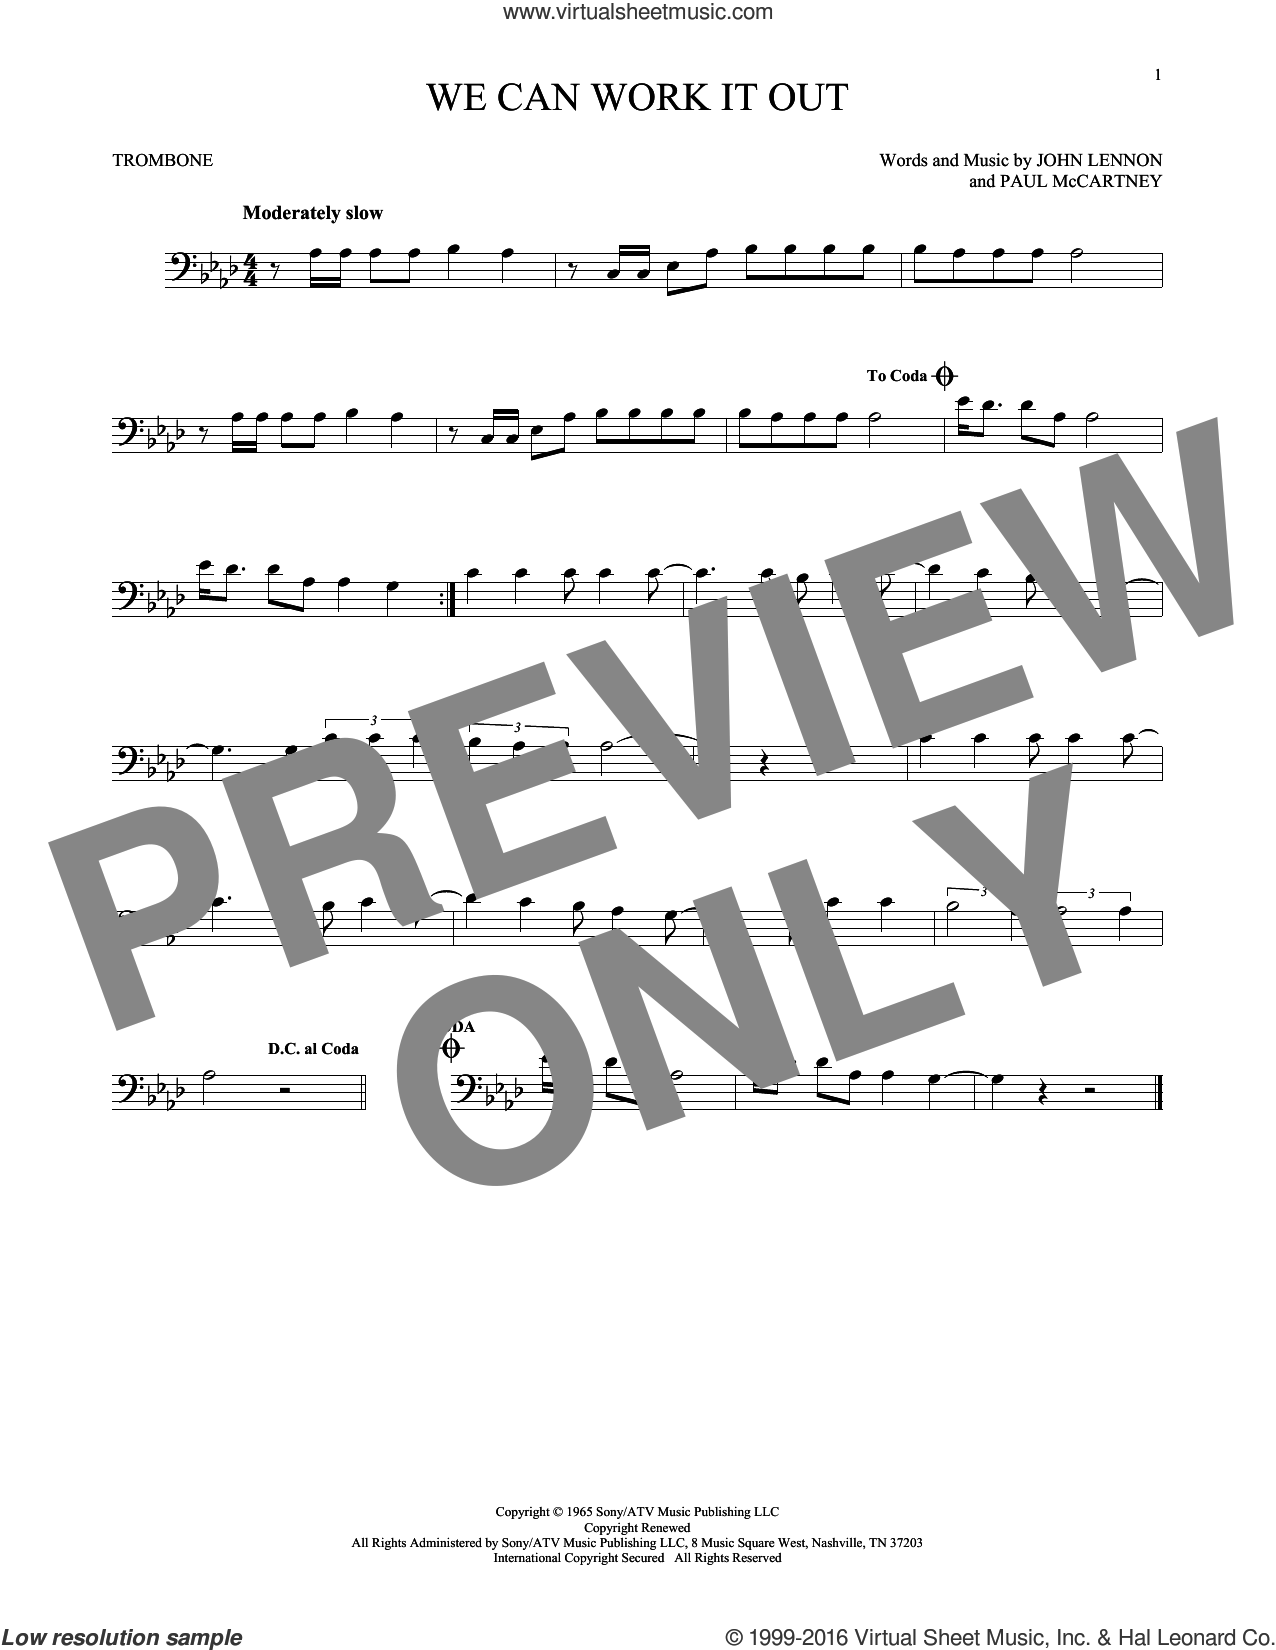 We Can Work It Out sheet music for trombone solo by Paul McCartney, The Beatles and John Lennon. Score Image Preview.